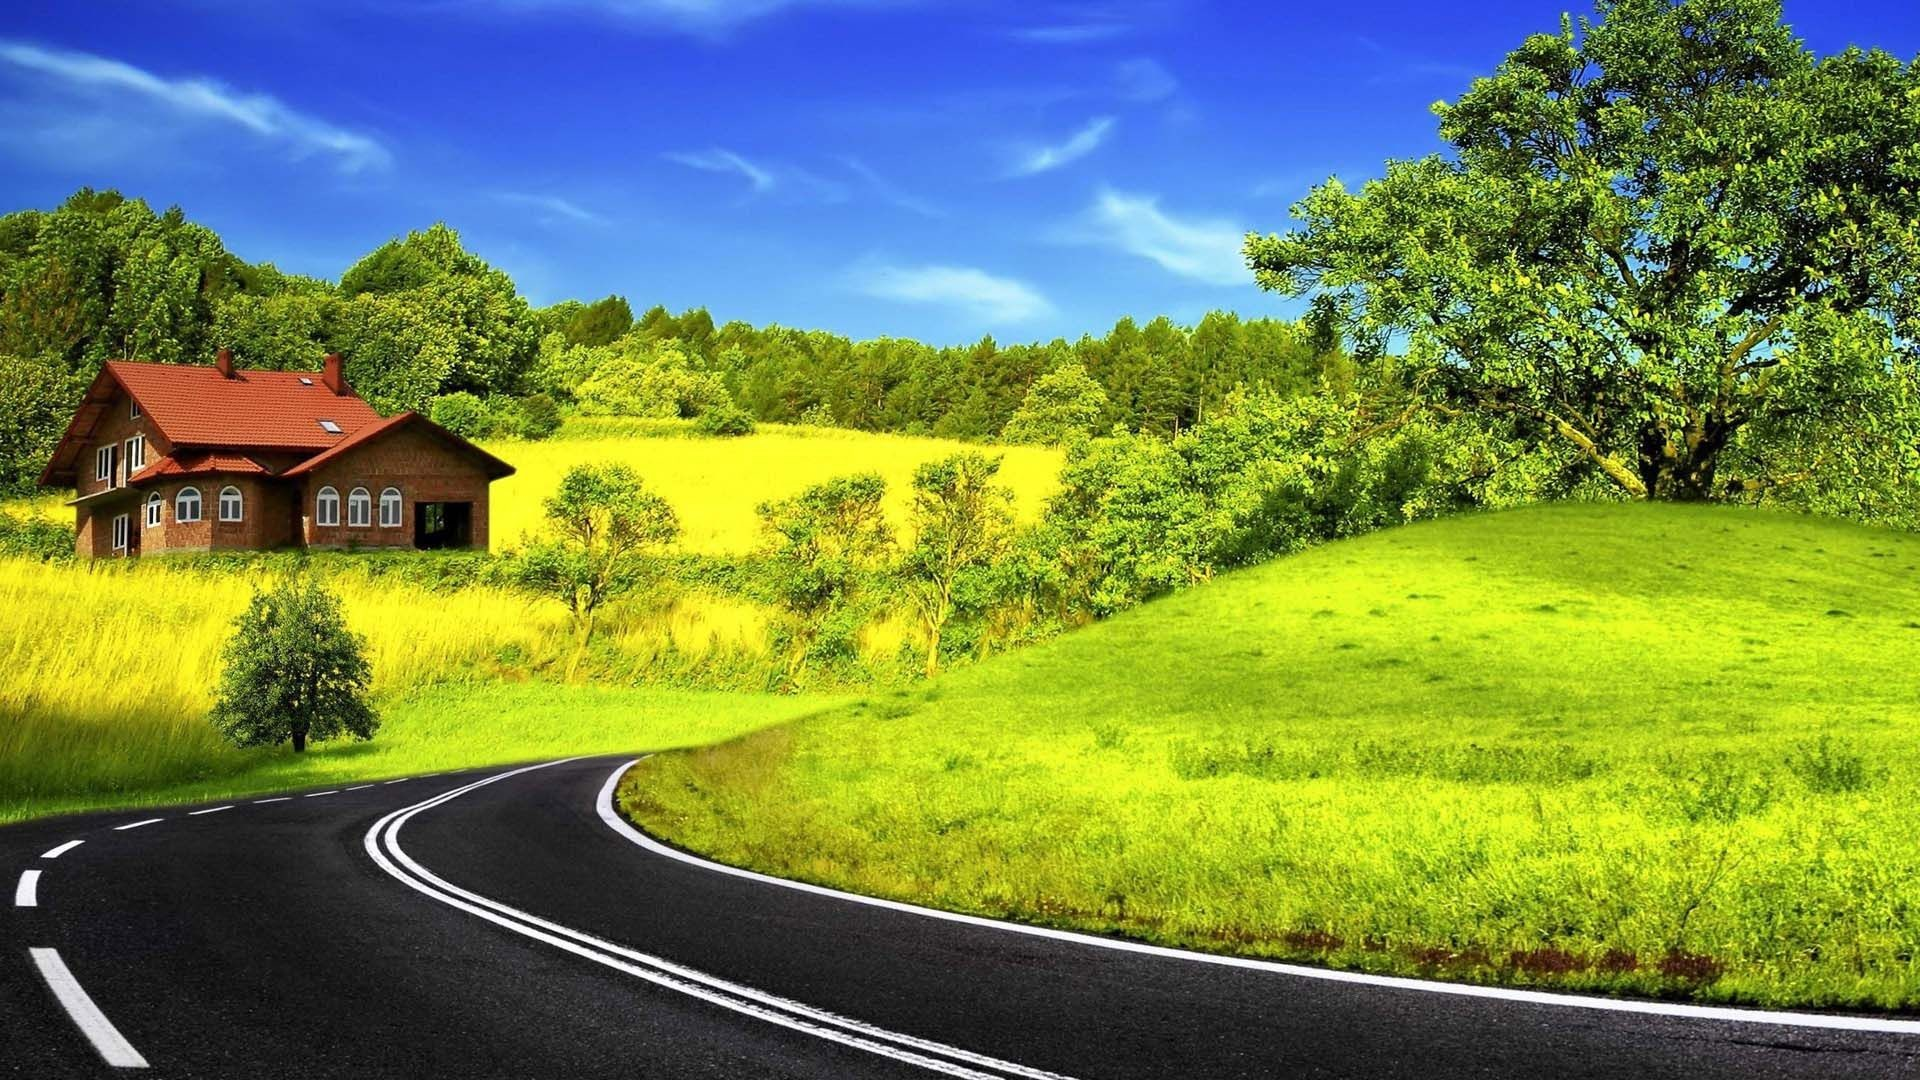 1920x1080 Green And Yellow Curved Road | HD Nature Wallpaper Free Download ...